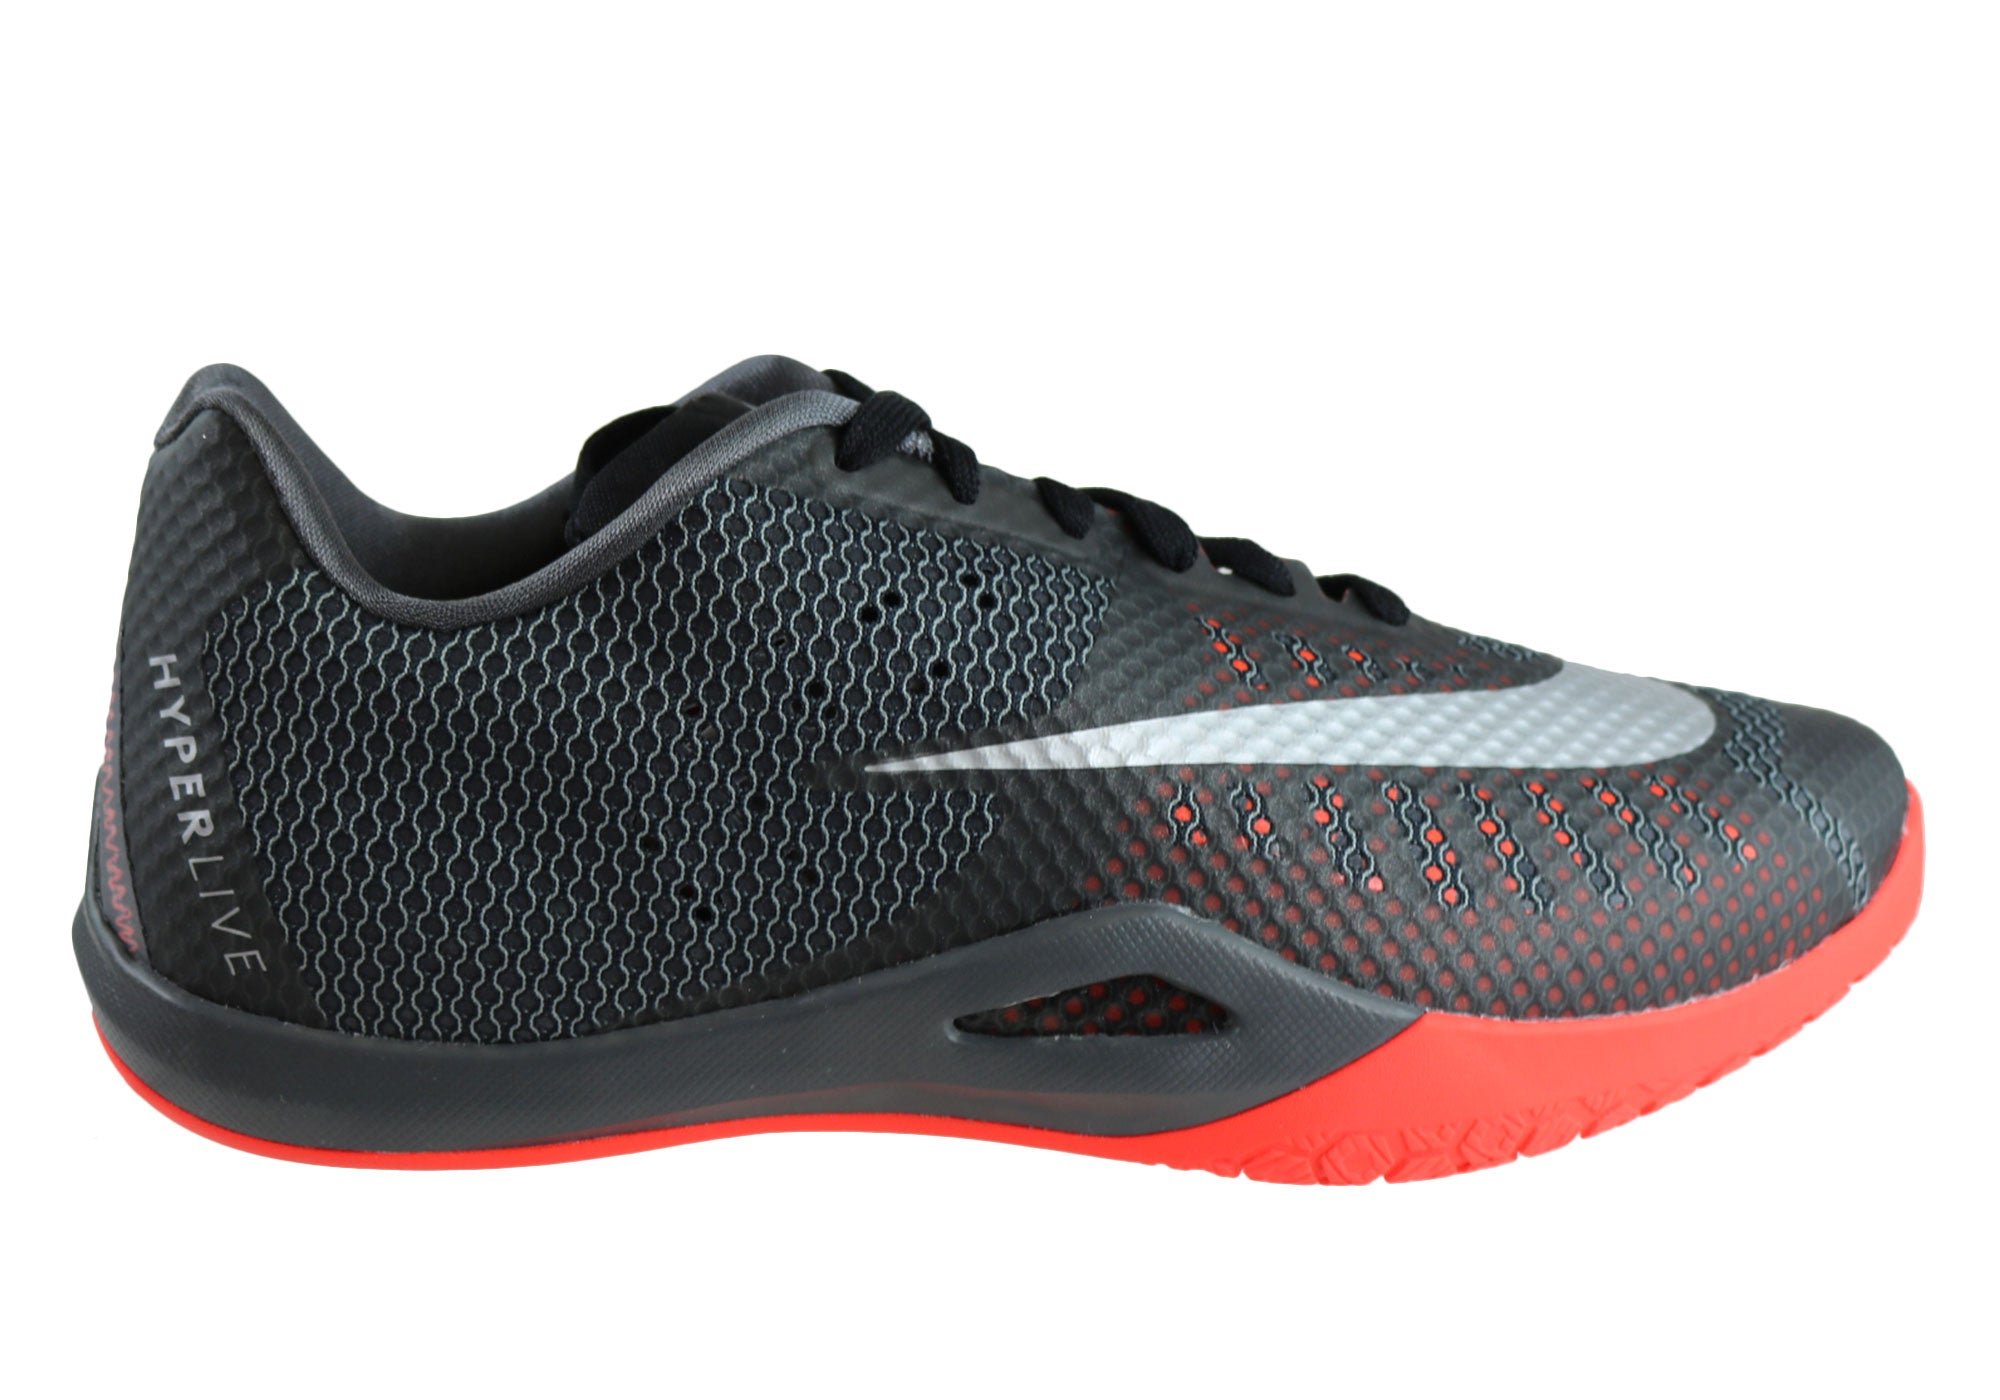 6c19faa1f7f0 Nike Hyperlive Mens Basketball Shoes Trainers